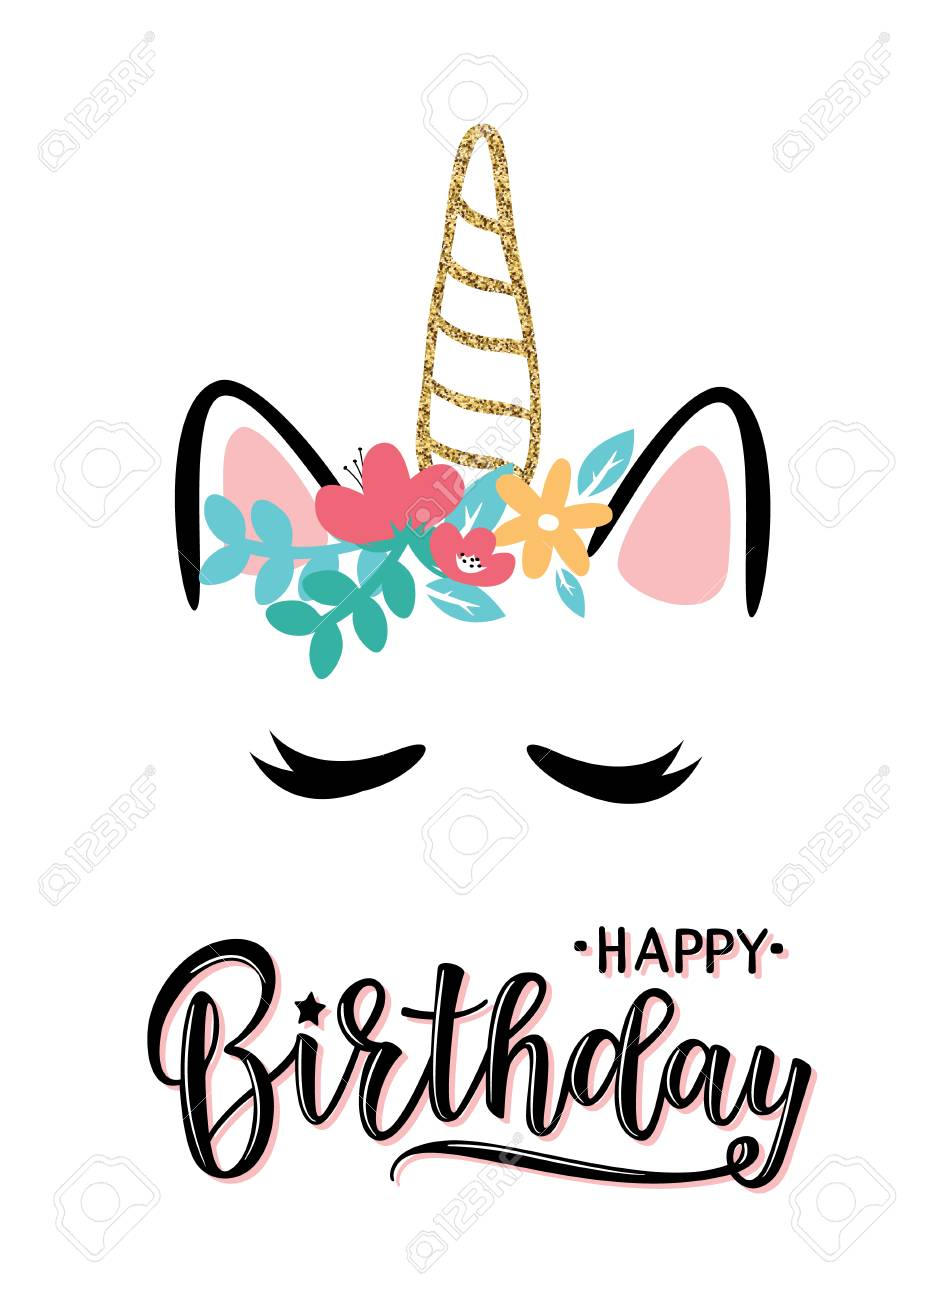 Vector Illustration Of A Happy Birthday Invitation With Unicorn